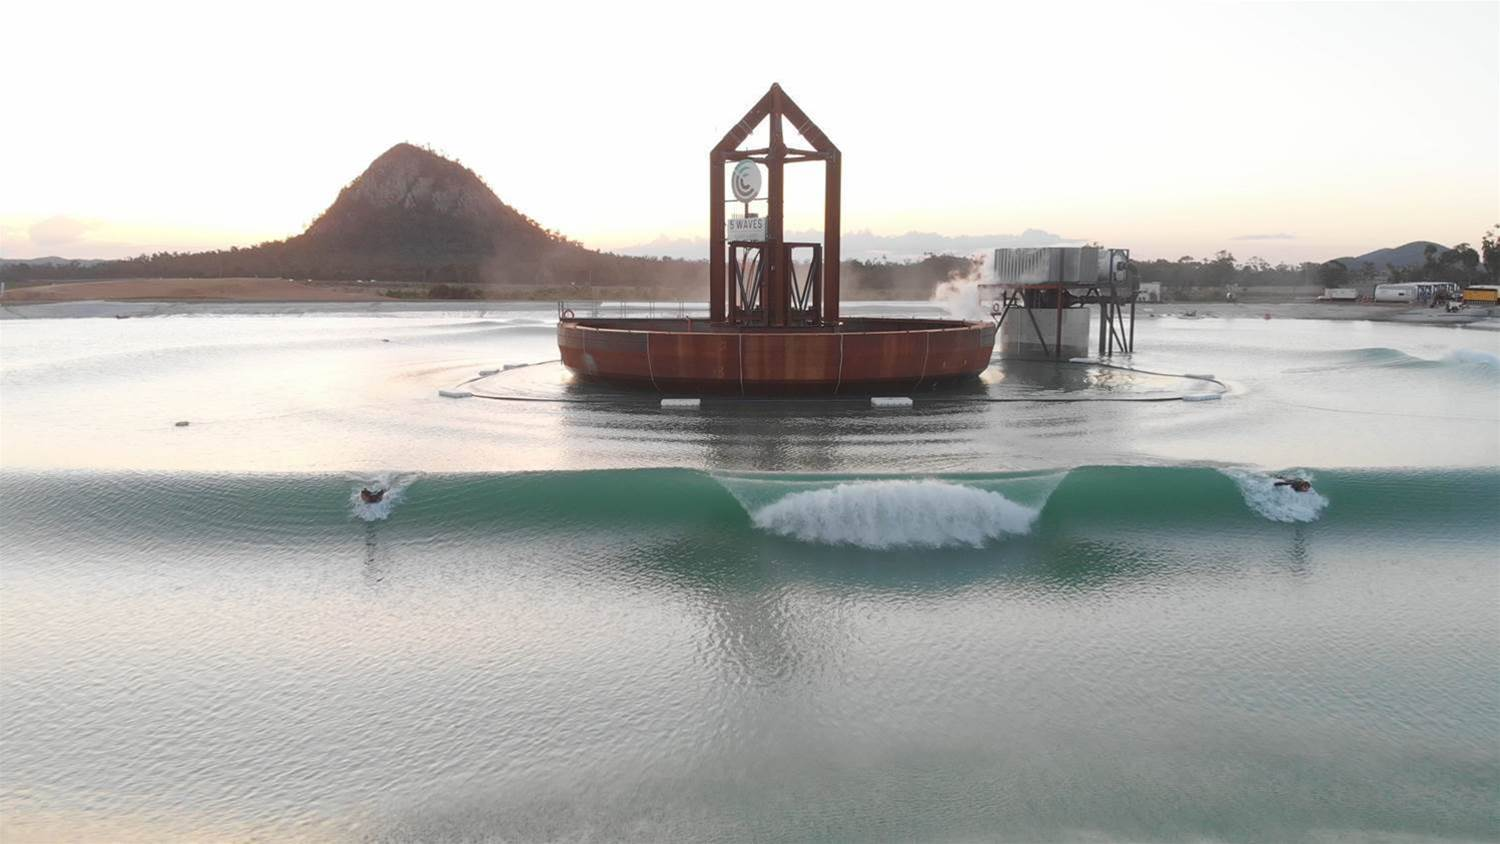 Six Locations Revealed for Surf Lakes